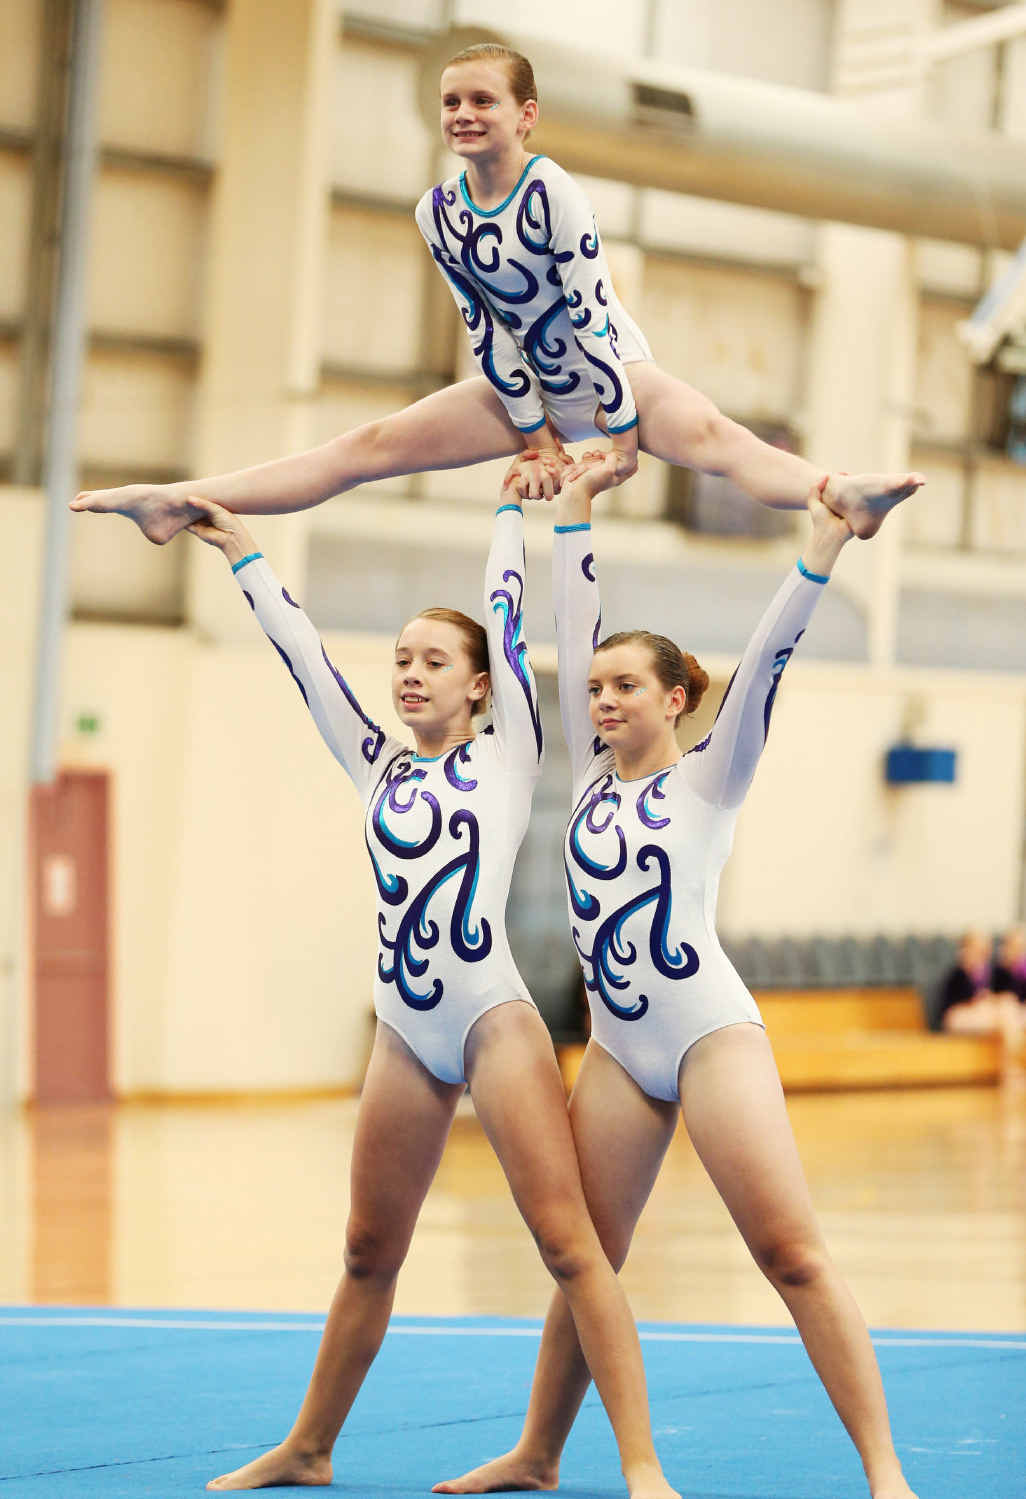 GYM GEMS: Mikayla Graves, Tahleah Hebbard and Holly Zerk at the Acrobatic Gymnastics National Club Championships and the Queensland Cup.